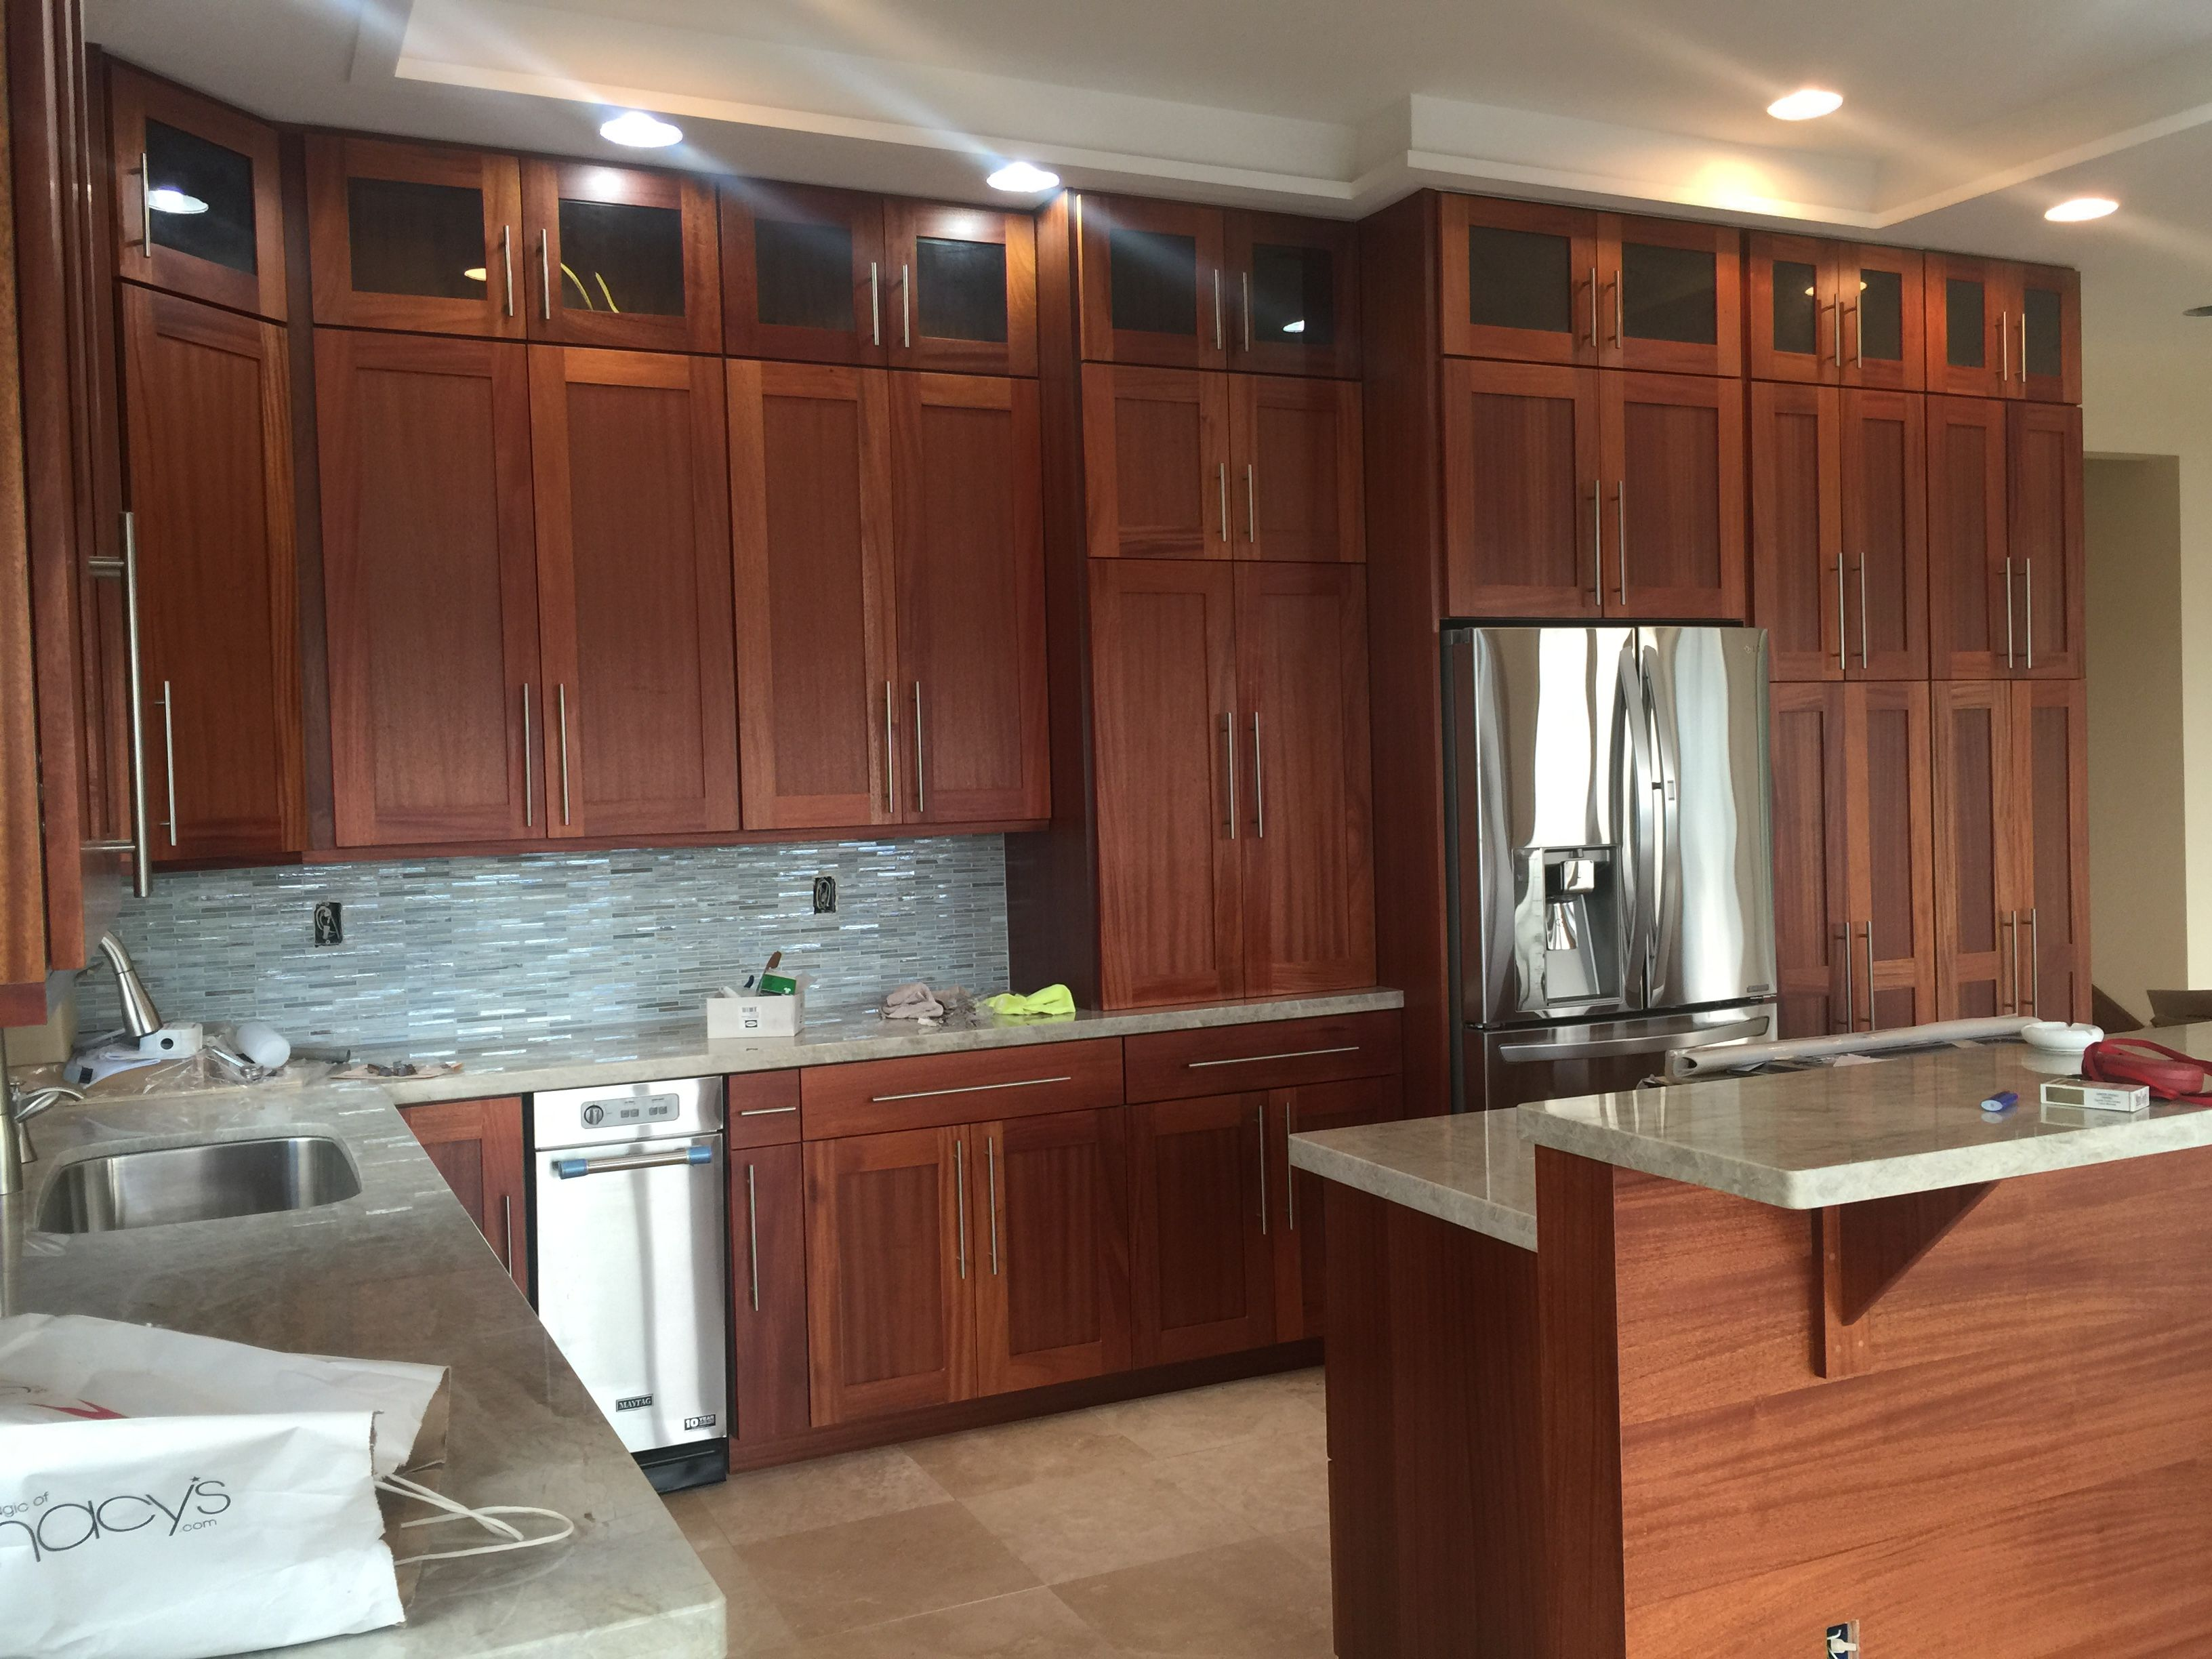 Mahogany Cabinets By Total Building Products Here In Hawaii Hertco Elsewhere Kitchen Cabinets Design Your Kitchen Cabinets And Countertops